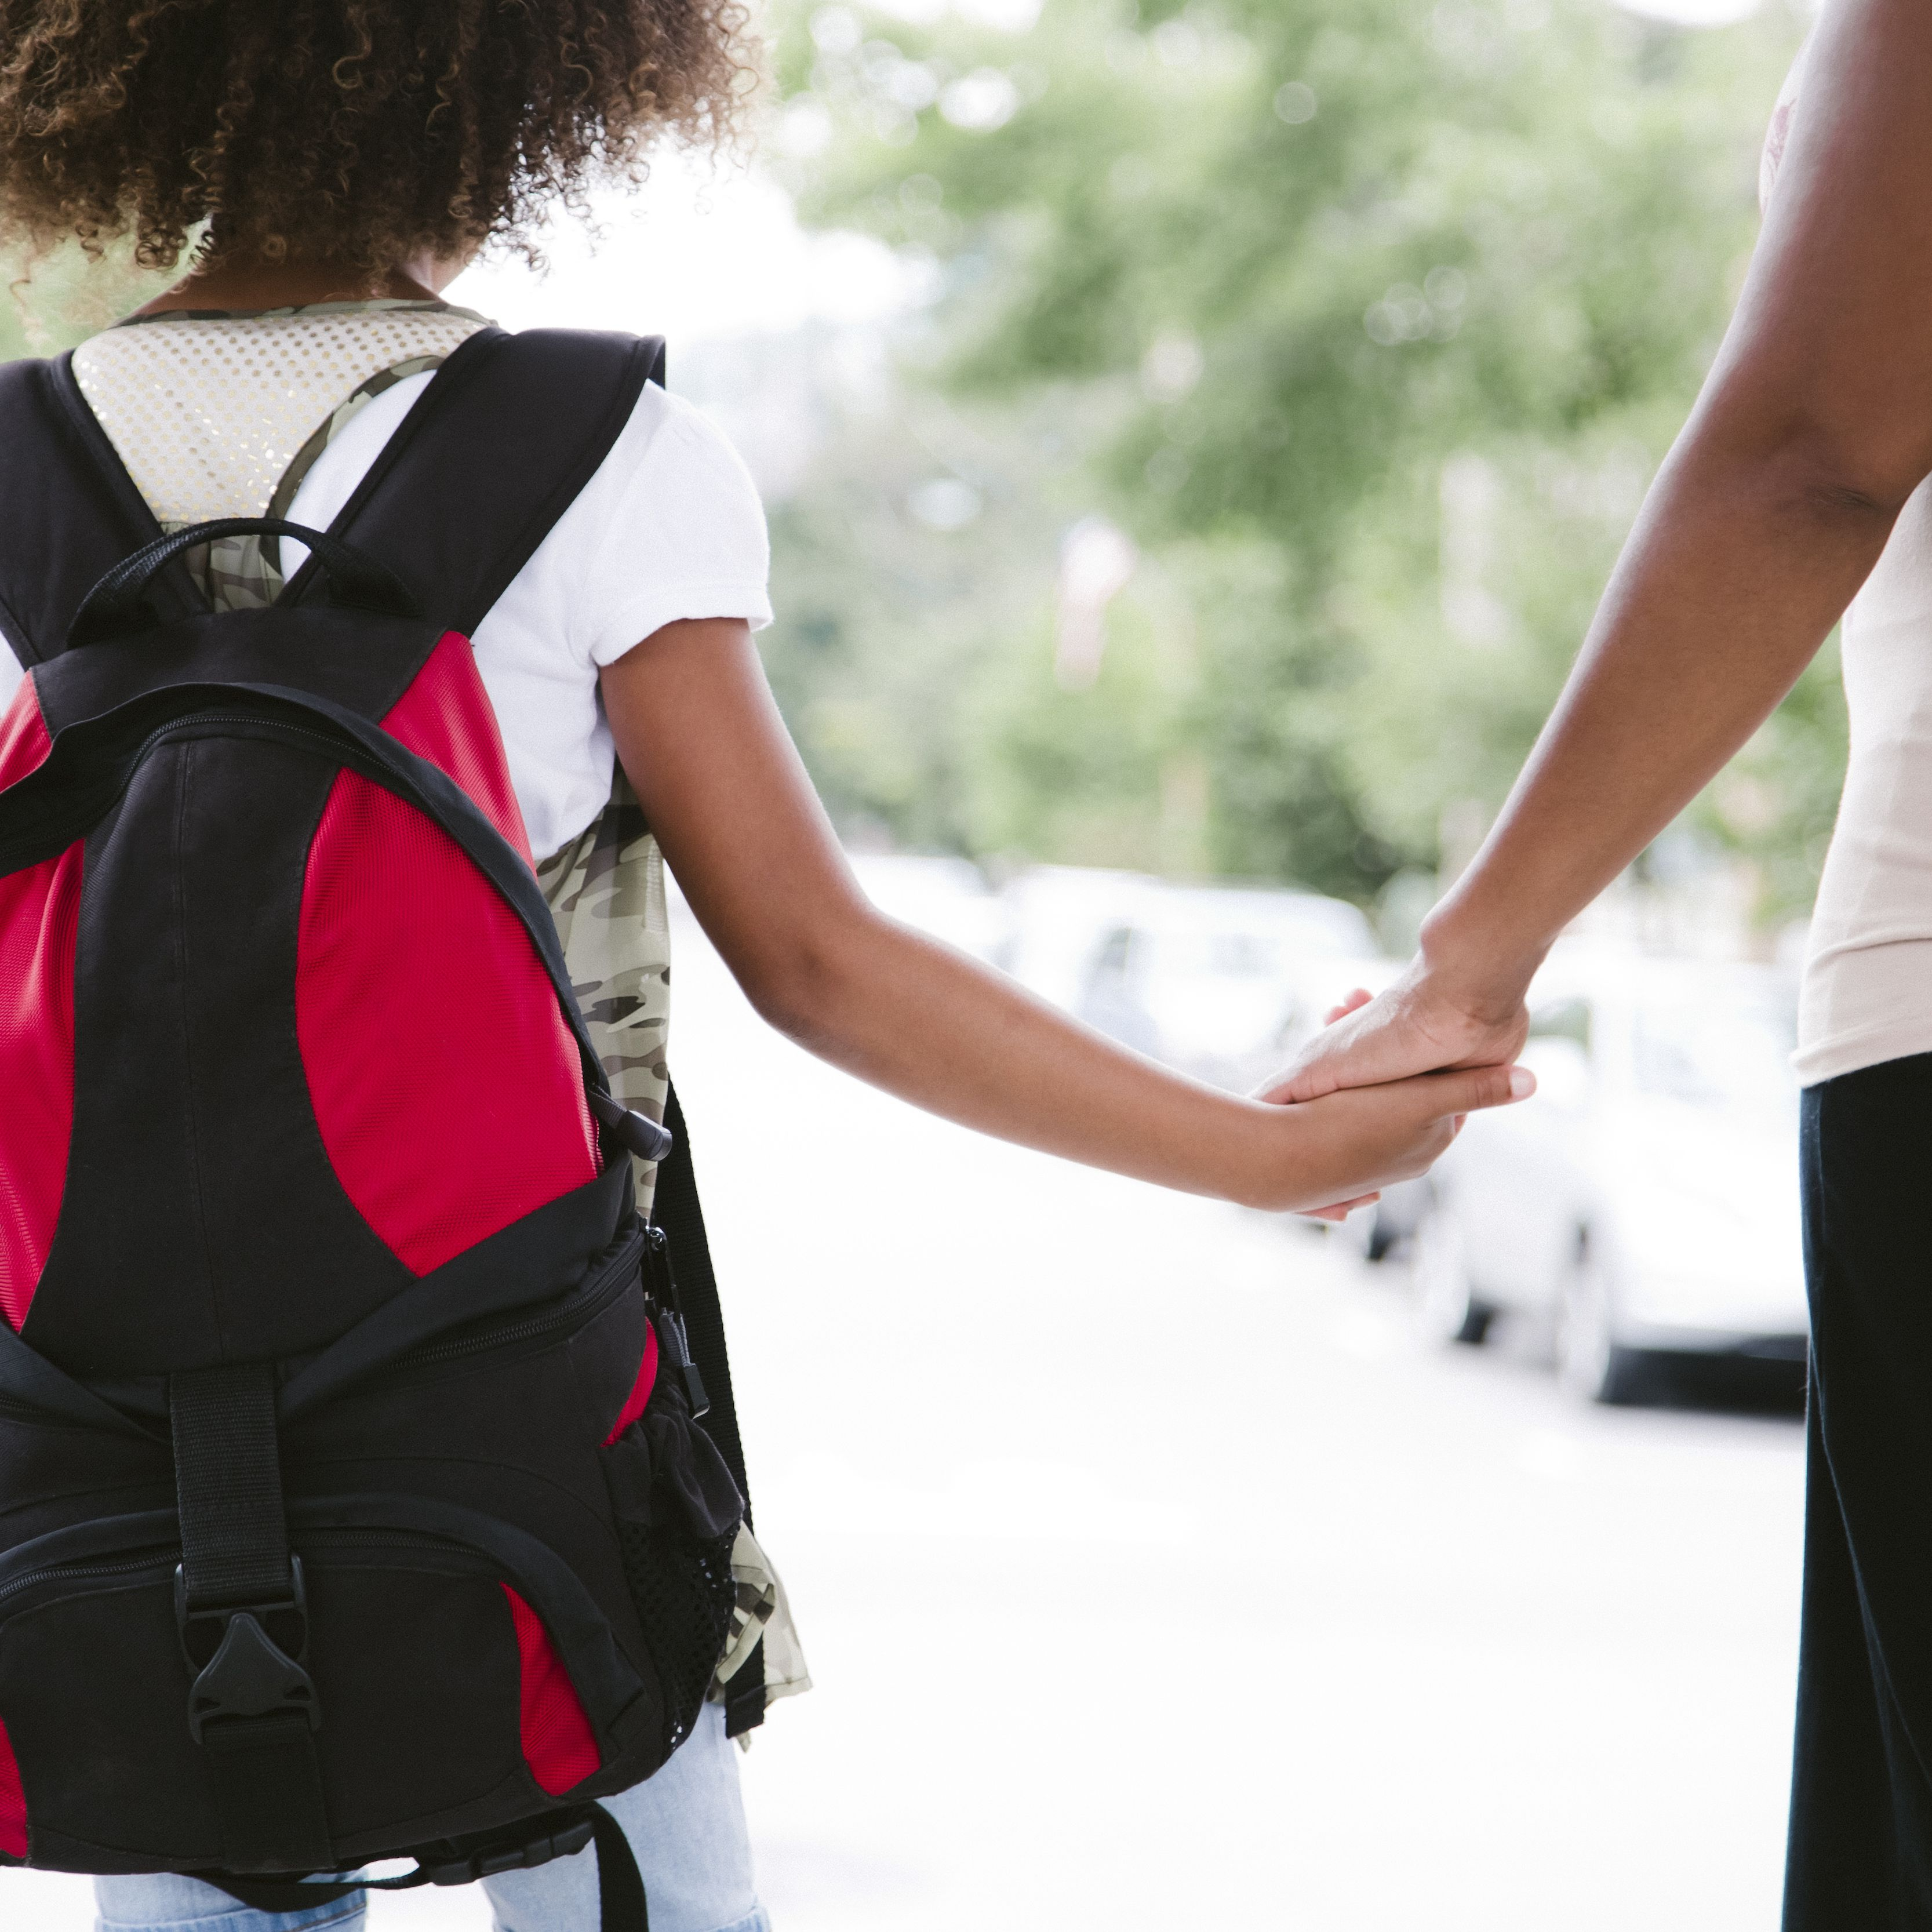 26+ Free Backpack Giveaway 2020 Near Me Pictures